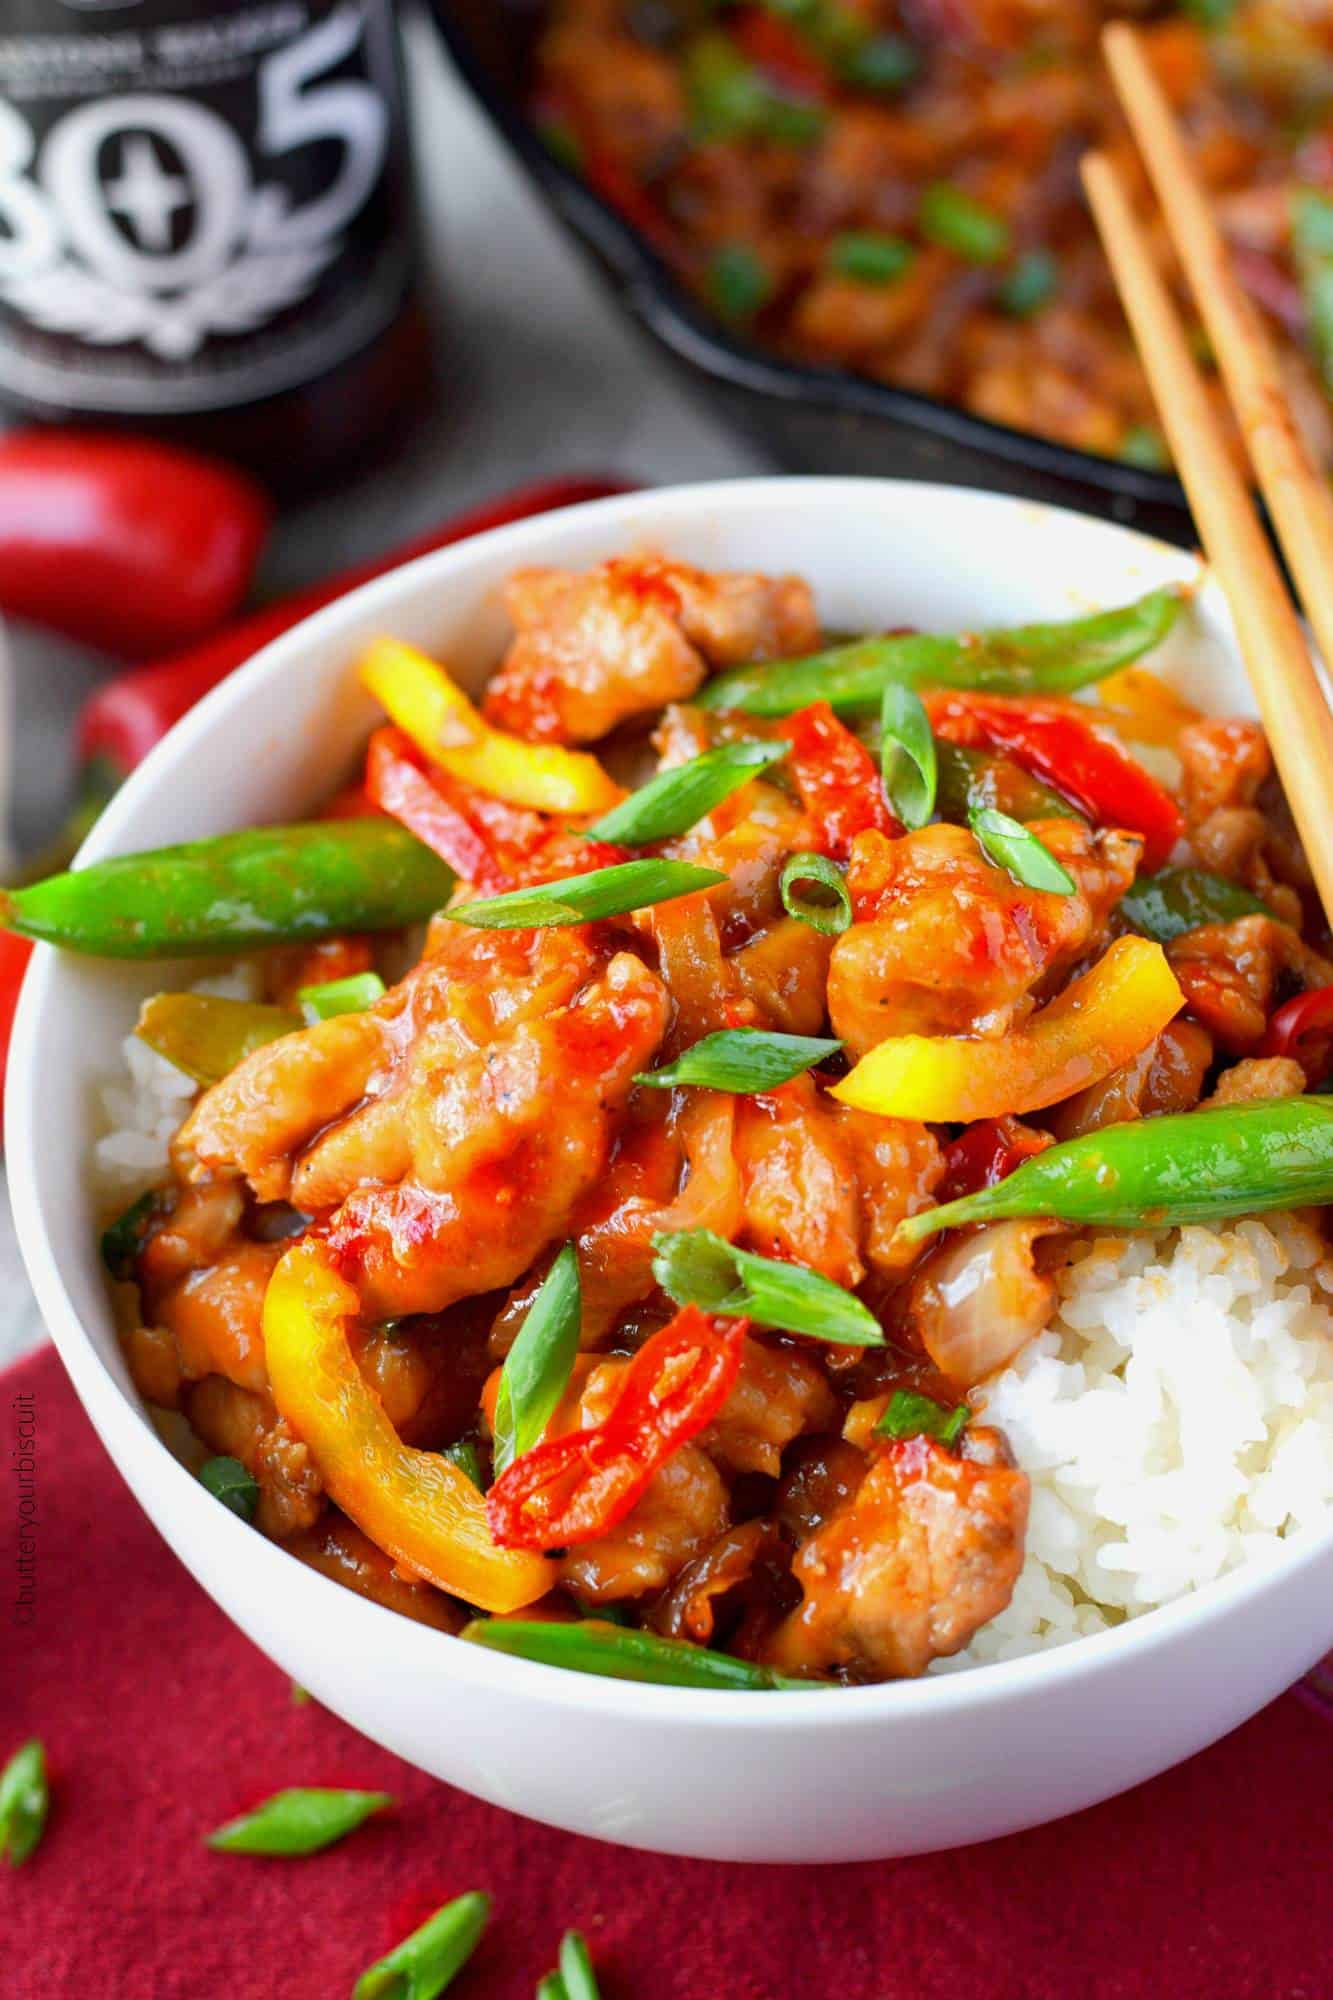 Sweet and Spicy chicken stir fry in a white bowl